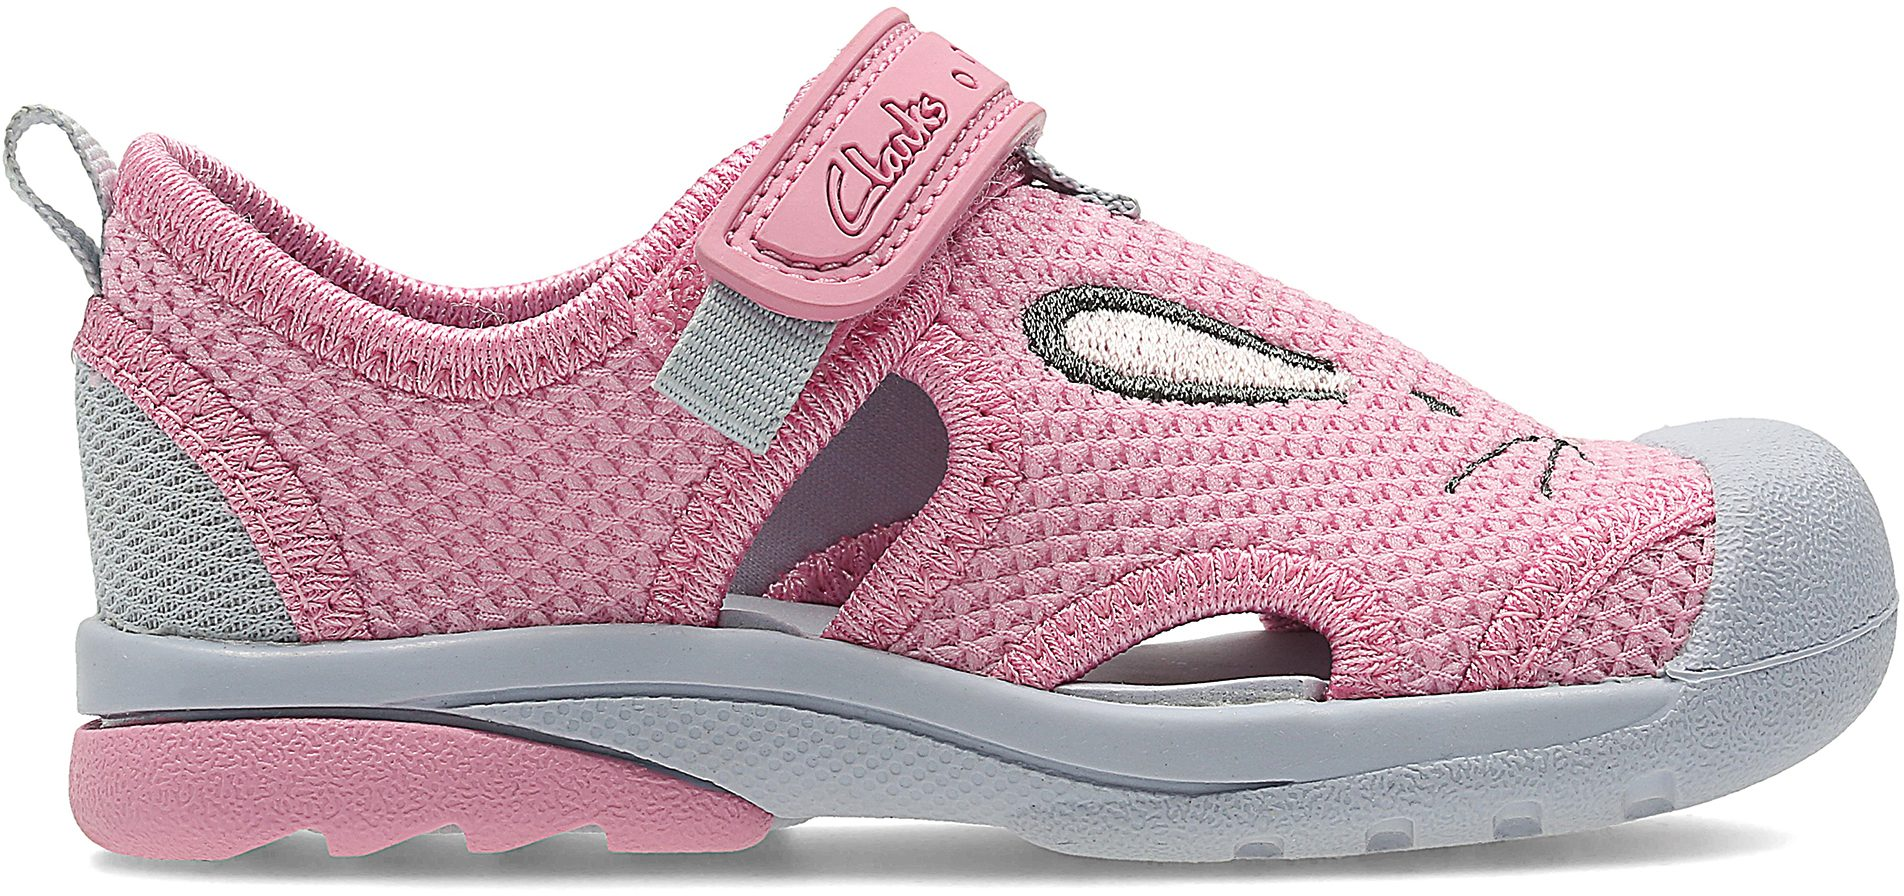 8258fe9fa38b Clarks Beach Molly First Baby Pink 26124013 - First Walkers - Humphries  Shoes